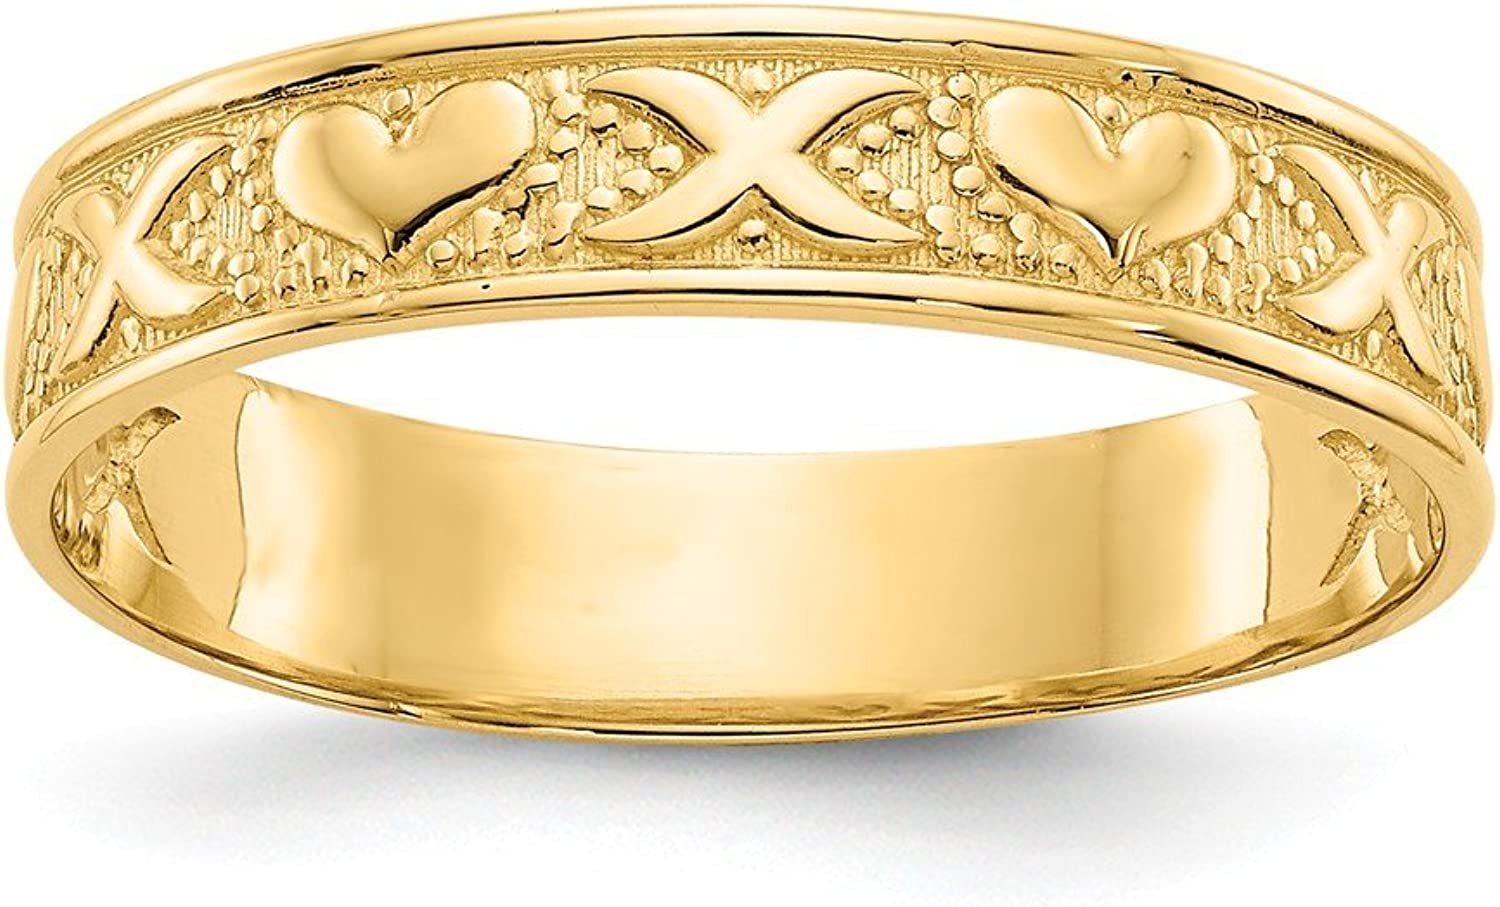 Beautiful Yellow gold 14K Yellowgold 14K X and Heart Embossed Ring